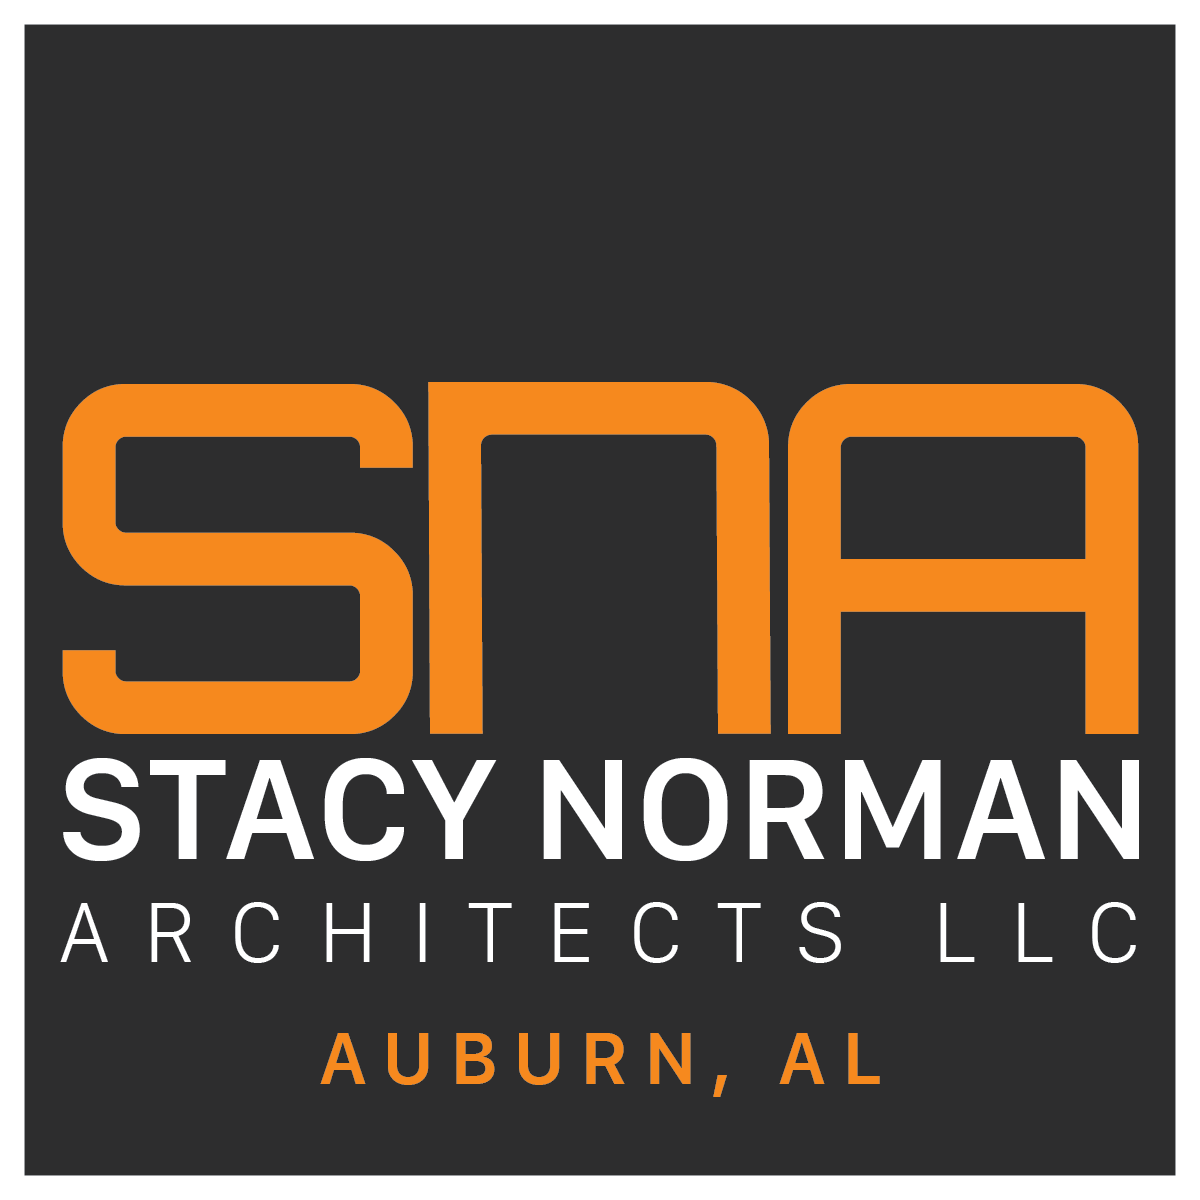 Stacy Norman Architects